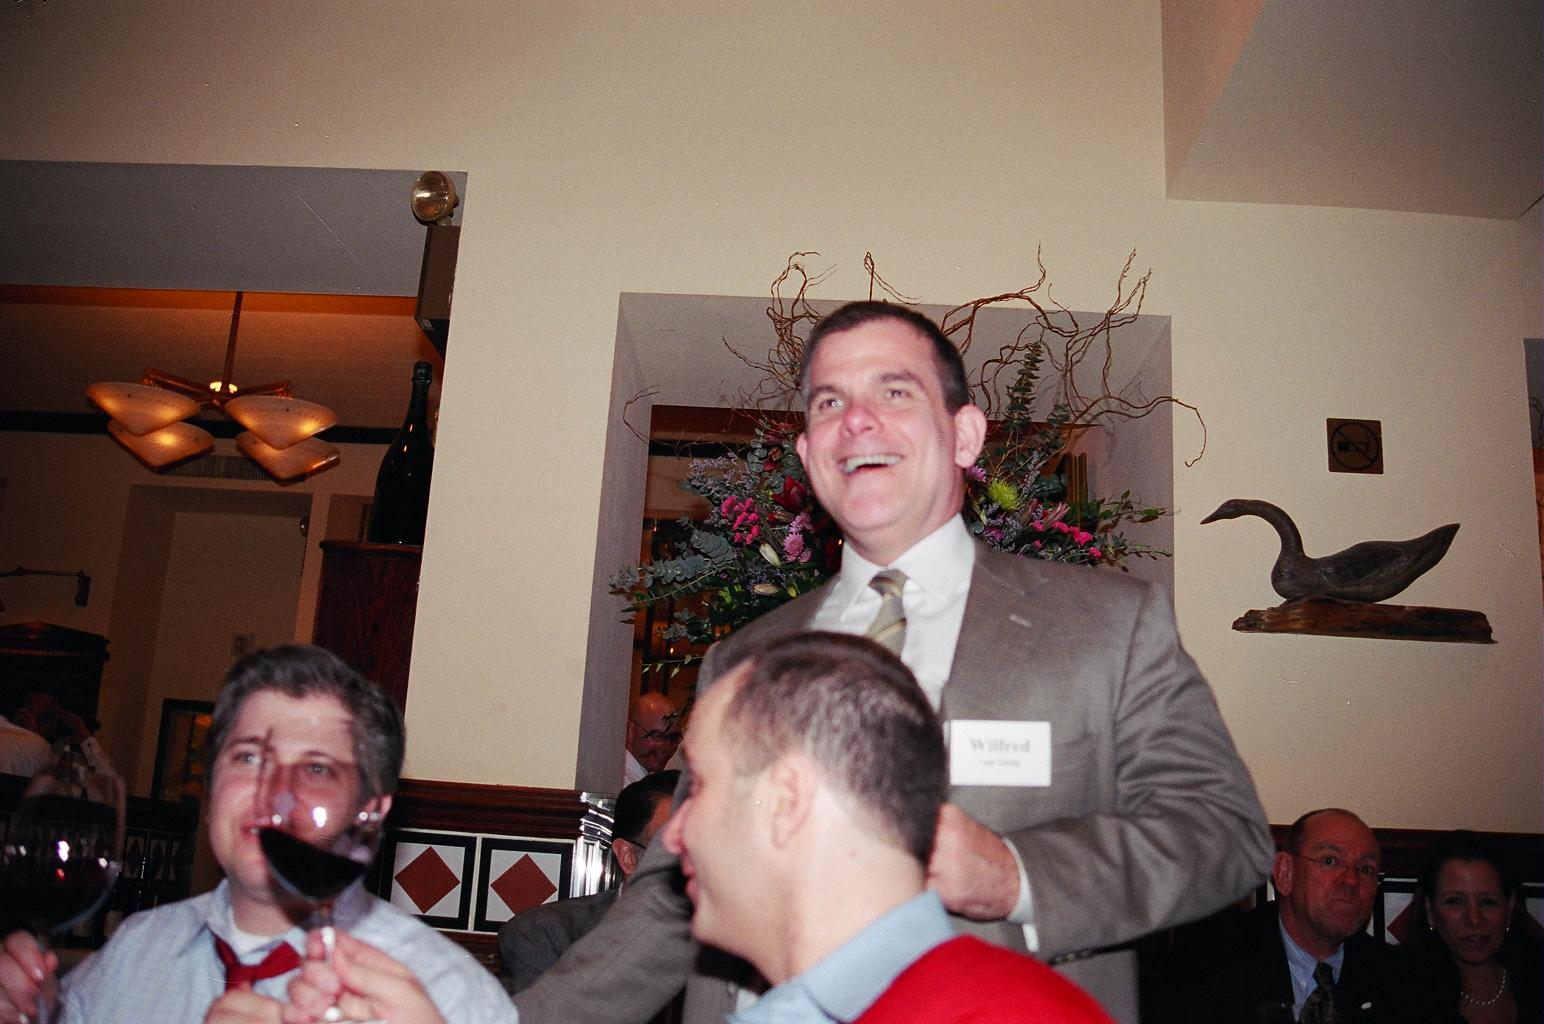 shafer hss post house nyc  michel toasts and blocks rob klafter s face while wilfred van gorp laughs